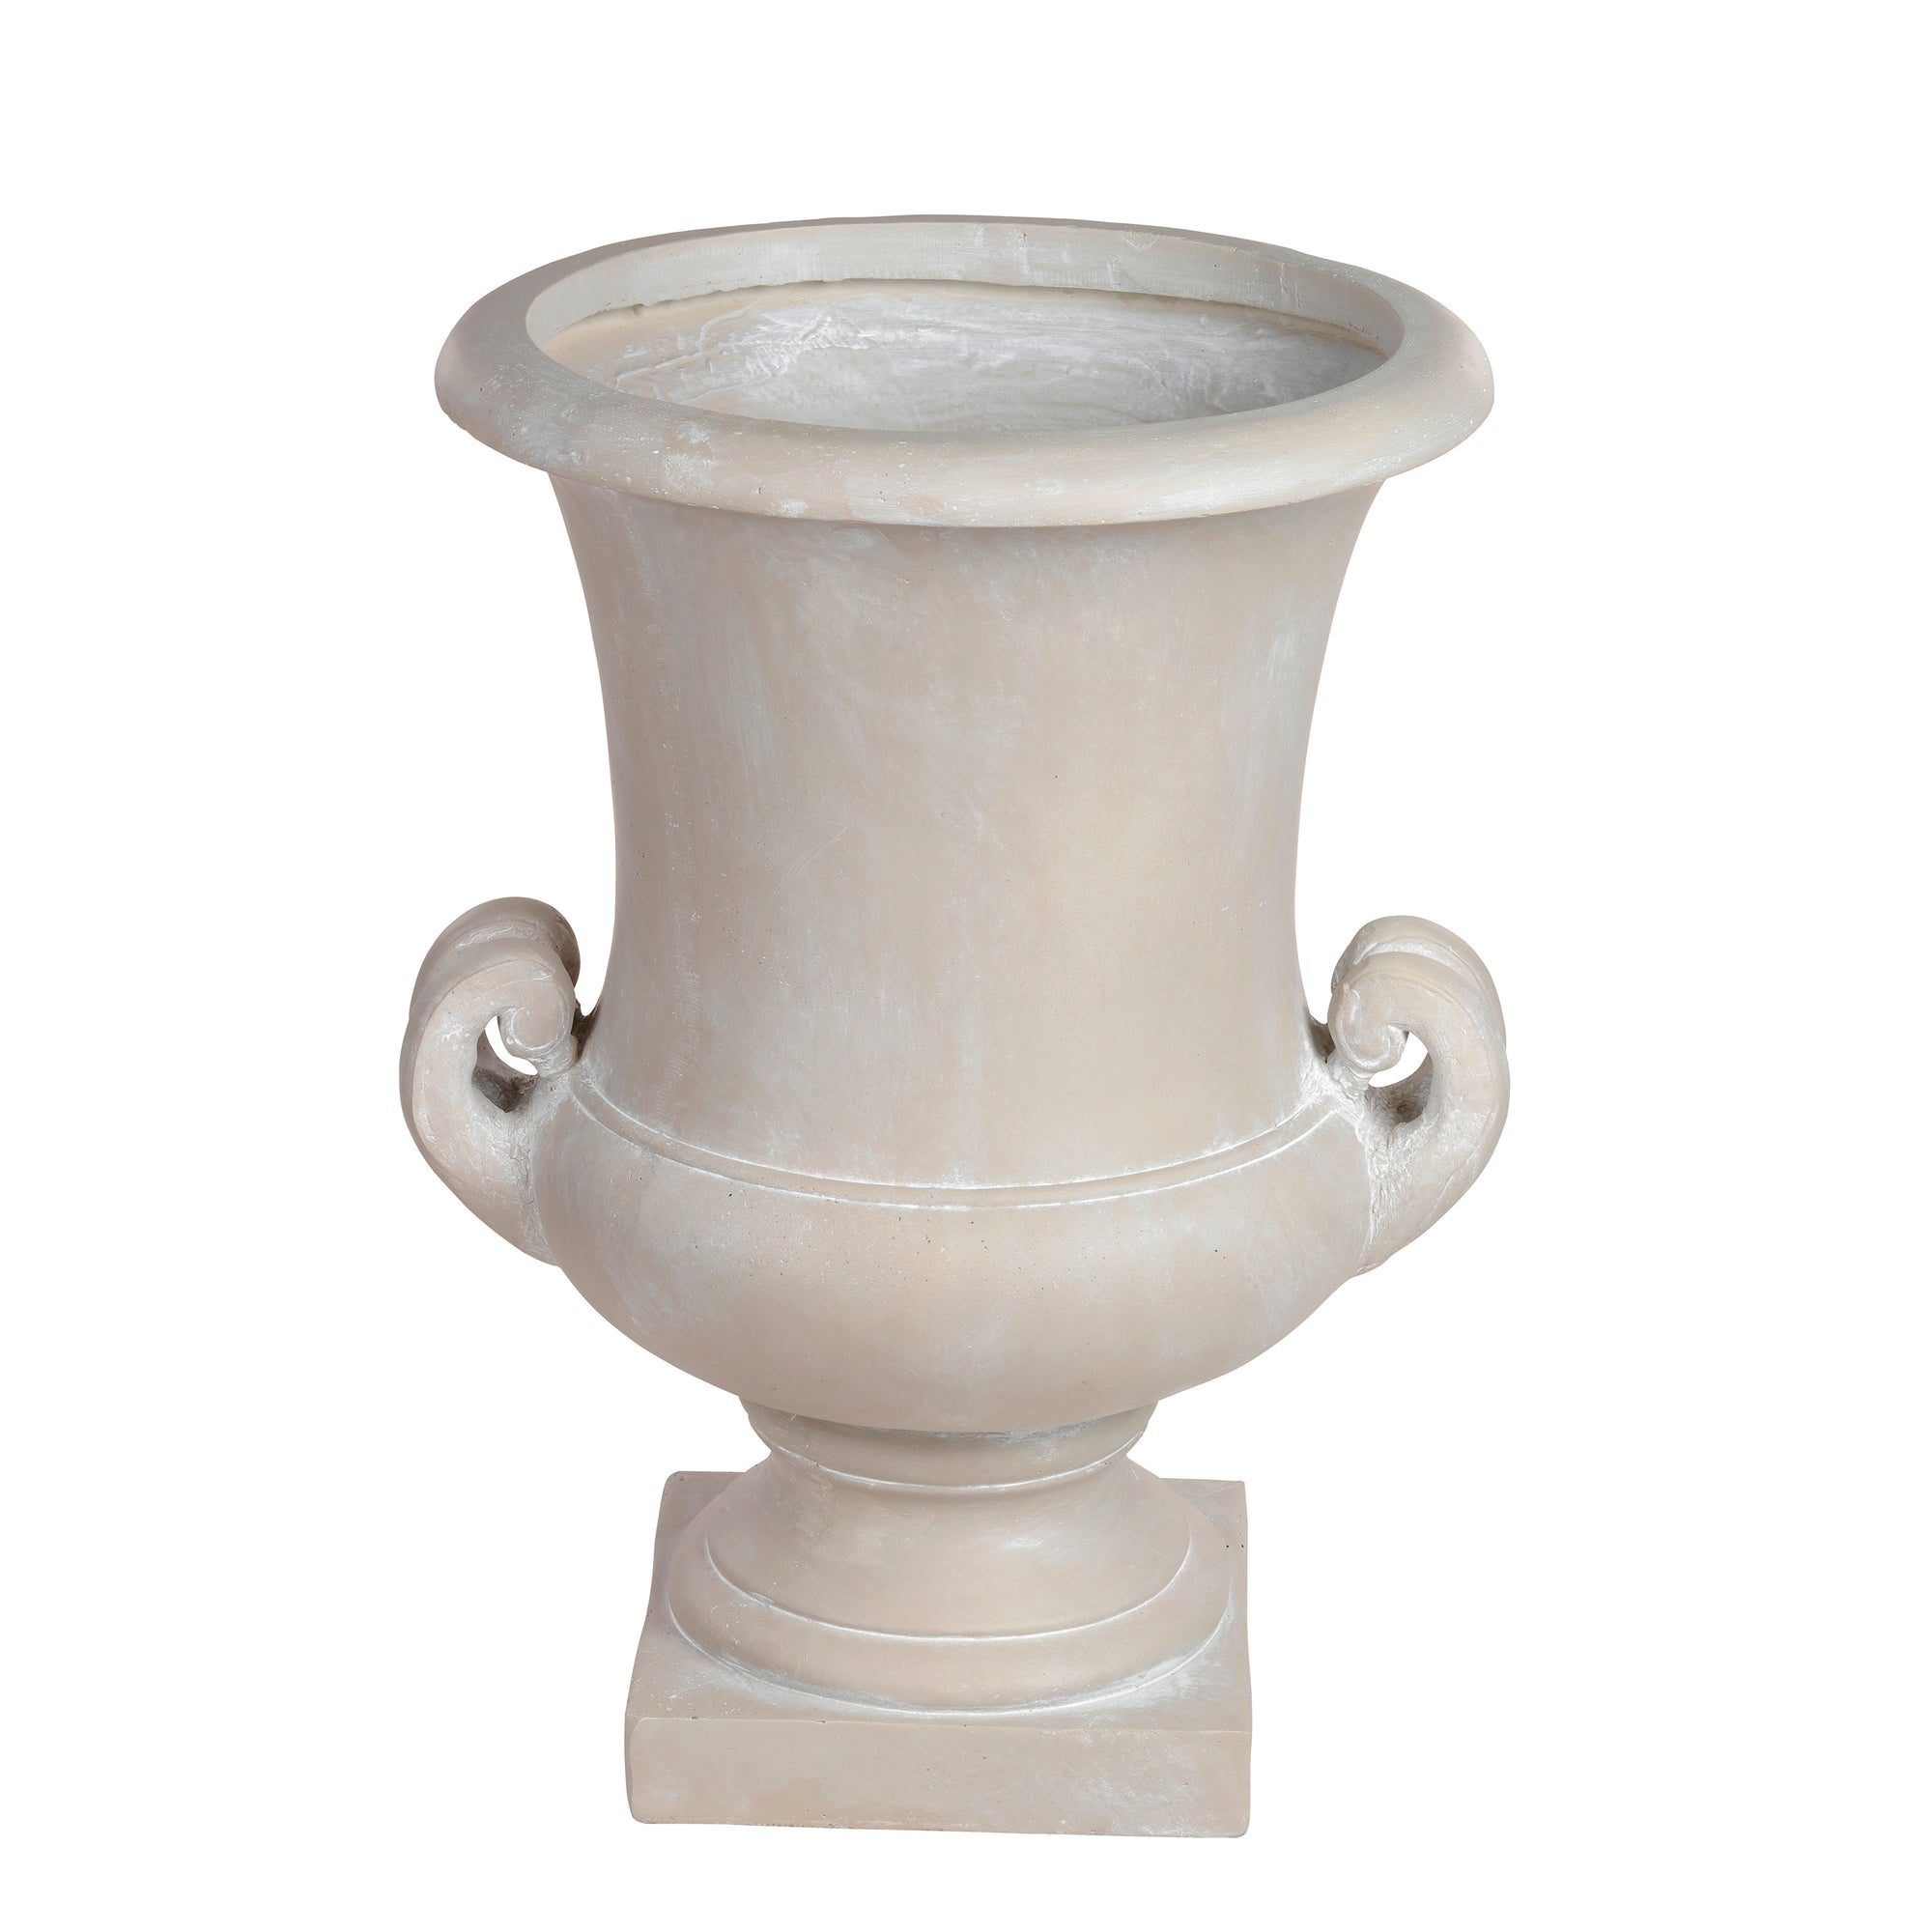 Luxury stonecast urn planter in light grey